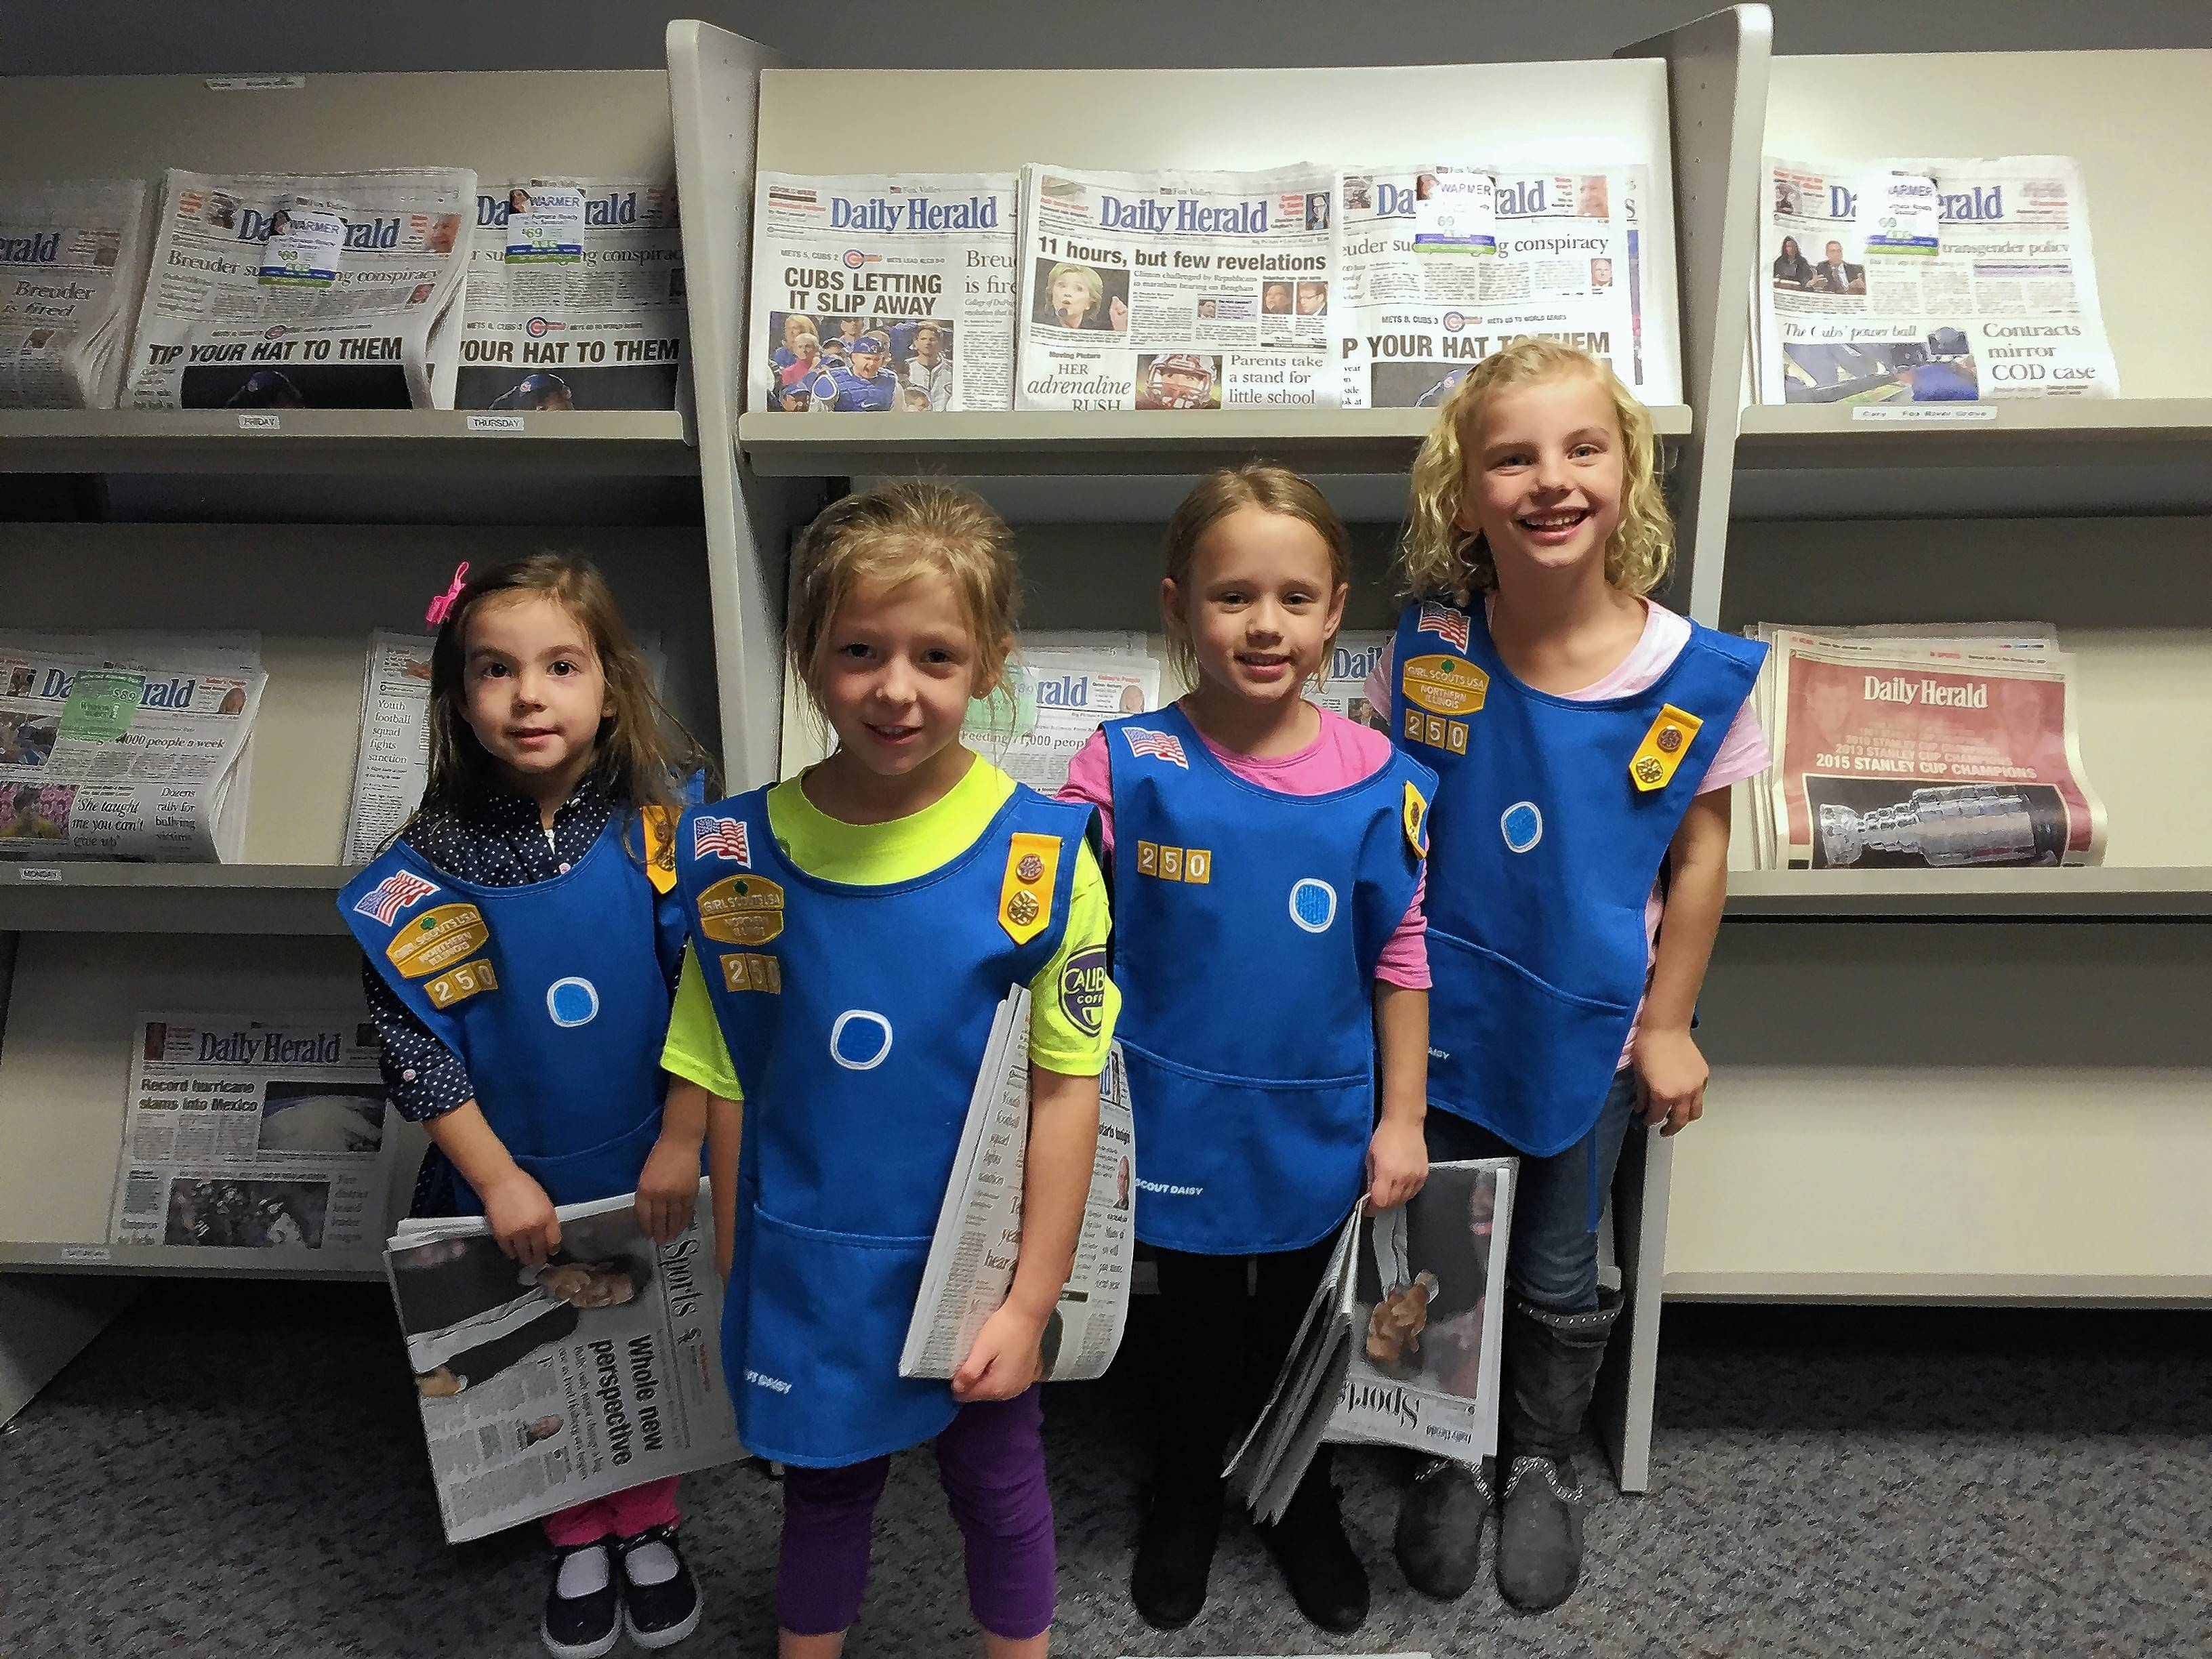 Huntley Daisy troop takes us back to the basics of truth and fairness